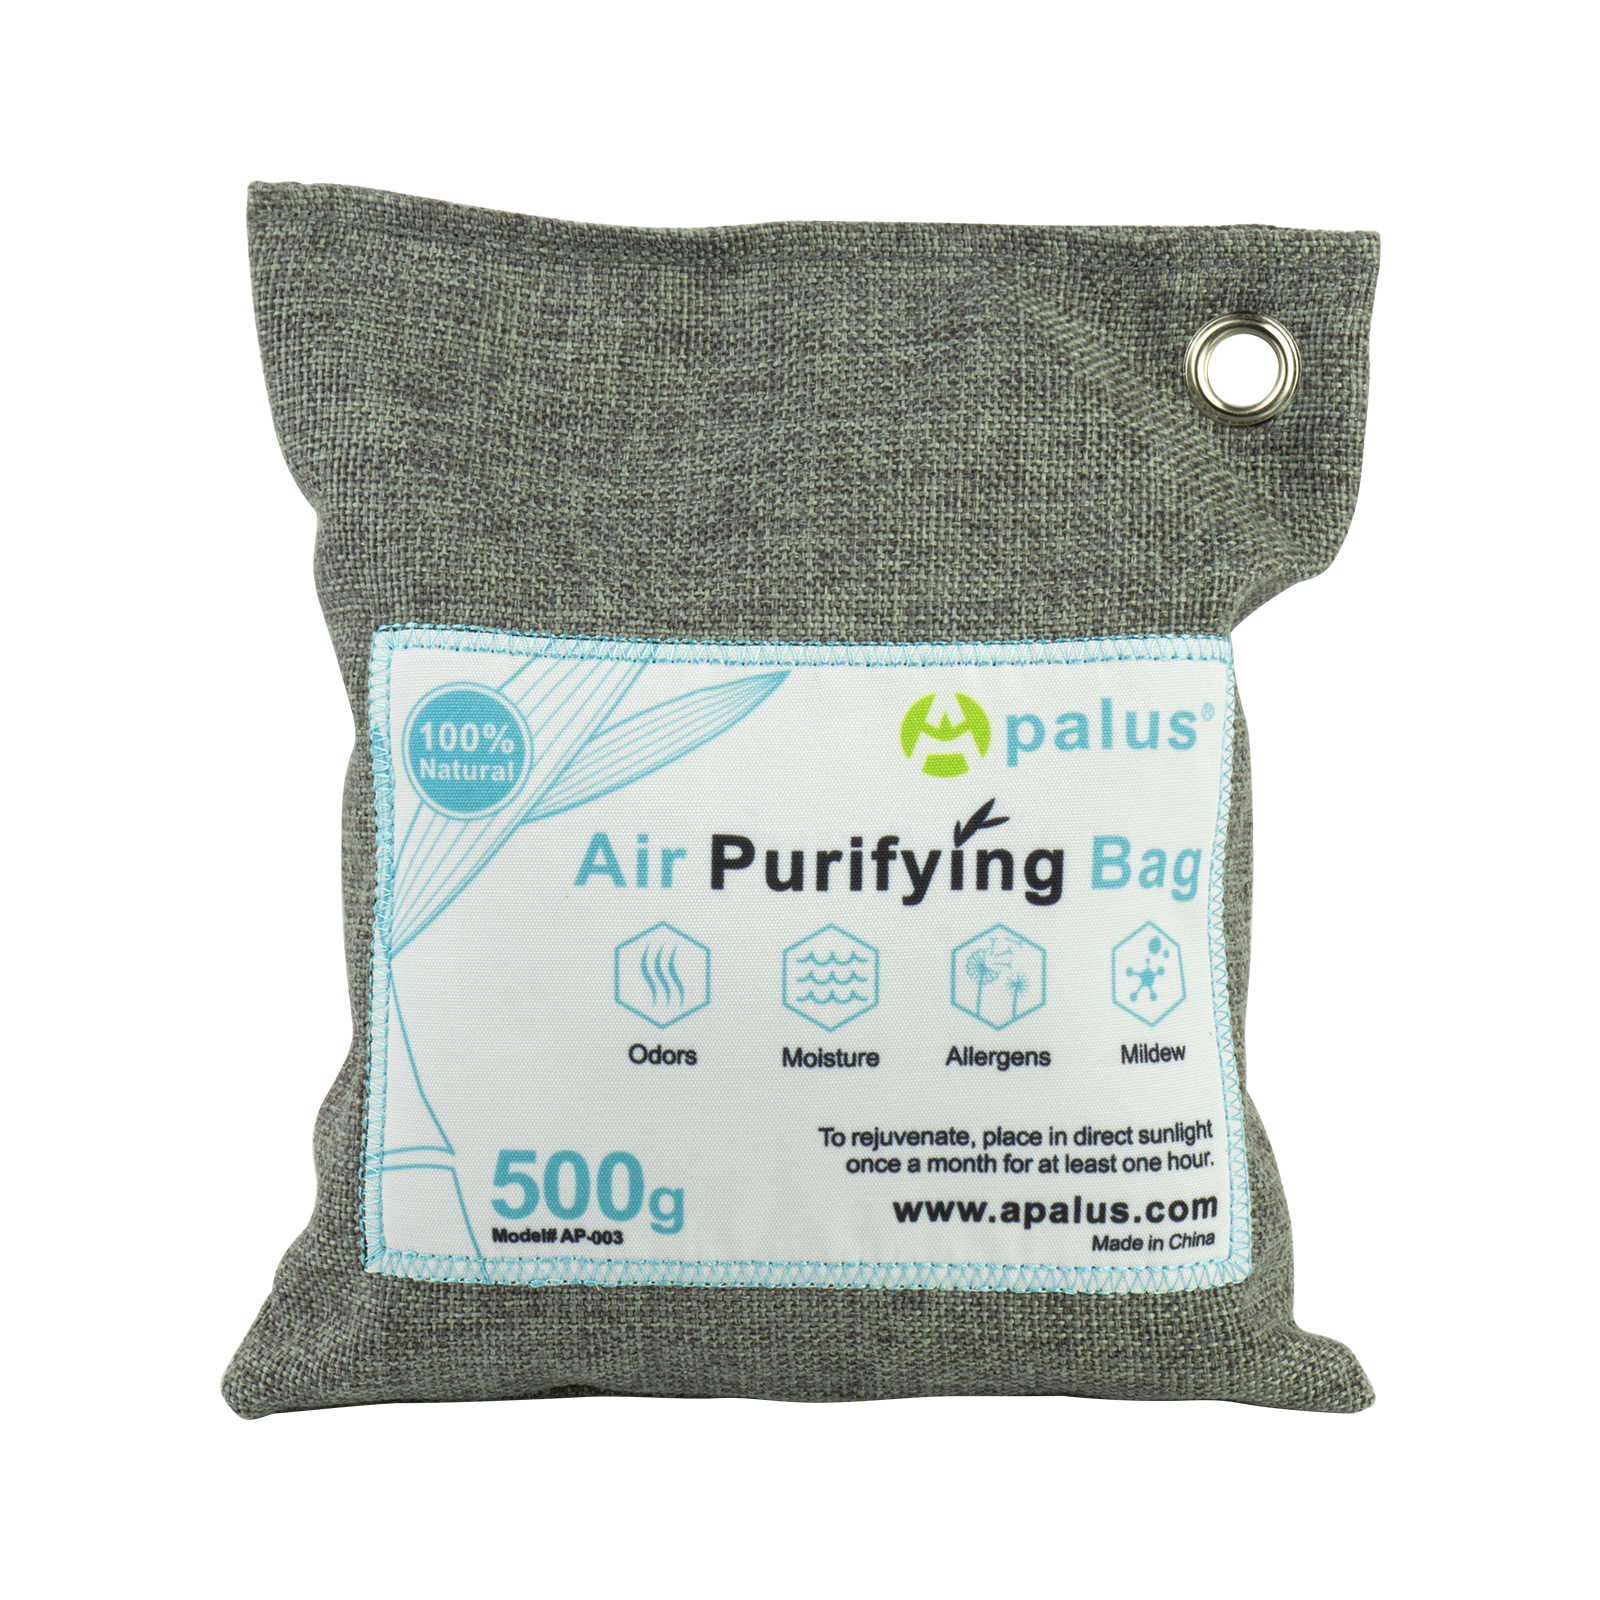 Apalus Air Purifying Bag, Bamboo Activated Charcoal Air Freshener, Car Air Dehumidifier, Deodorizer and Purifier Bags-100% Natural & Chemical Free Moisture, Odor Absorber, 500G